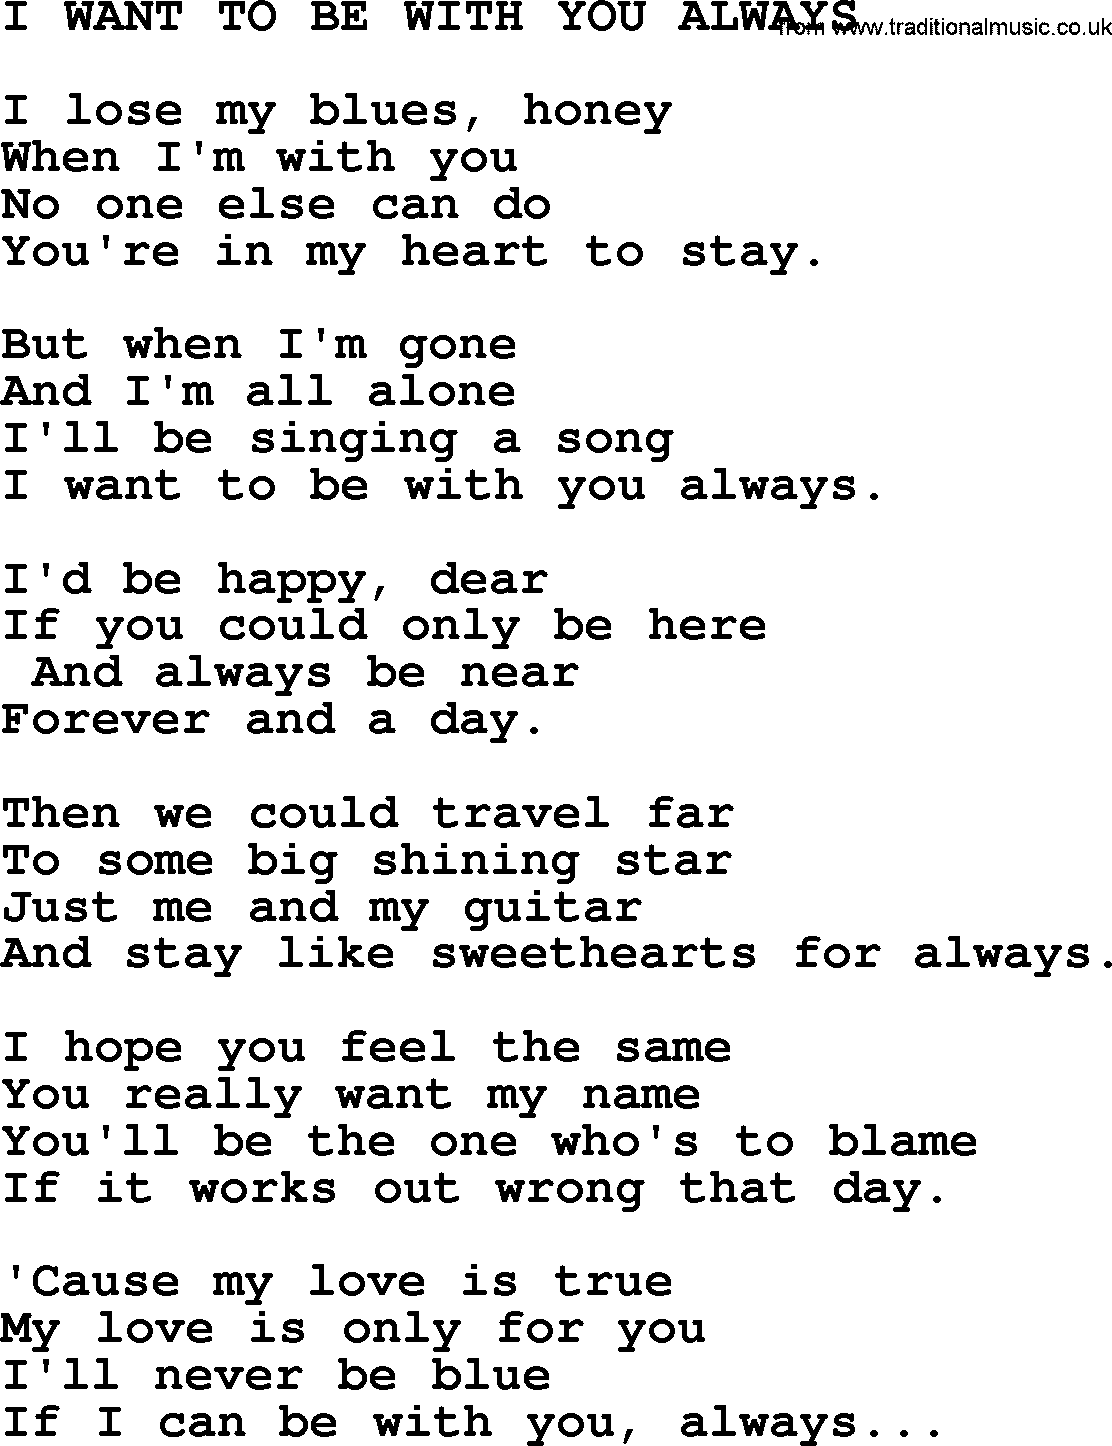 I just want to be happy song lyrics